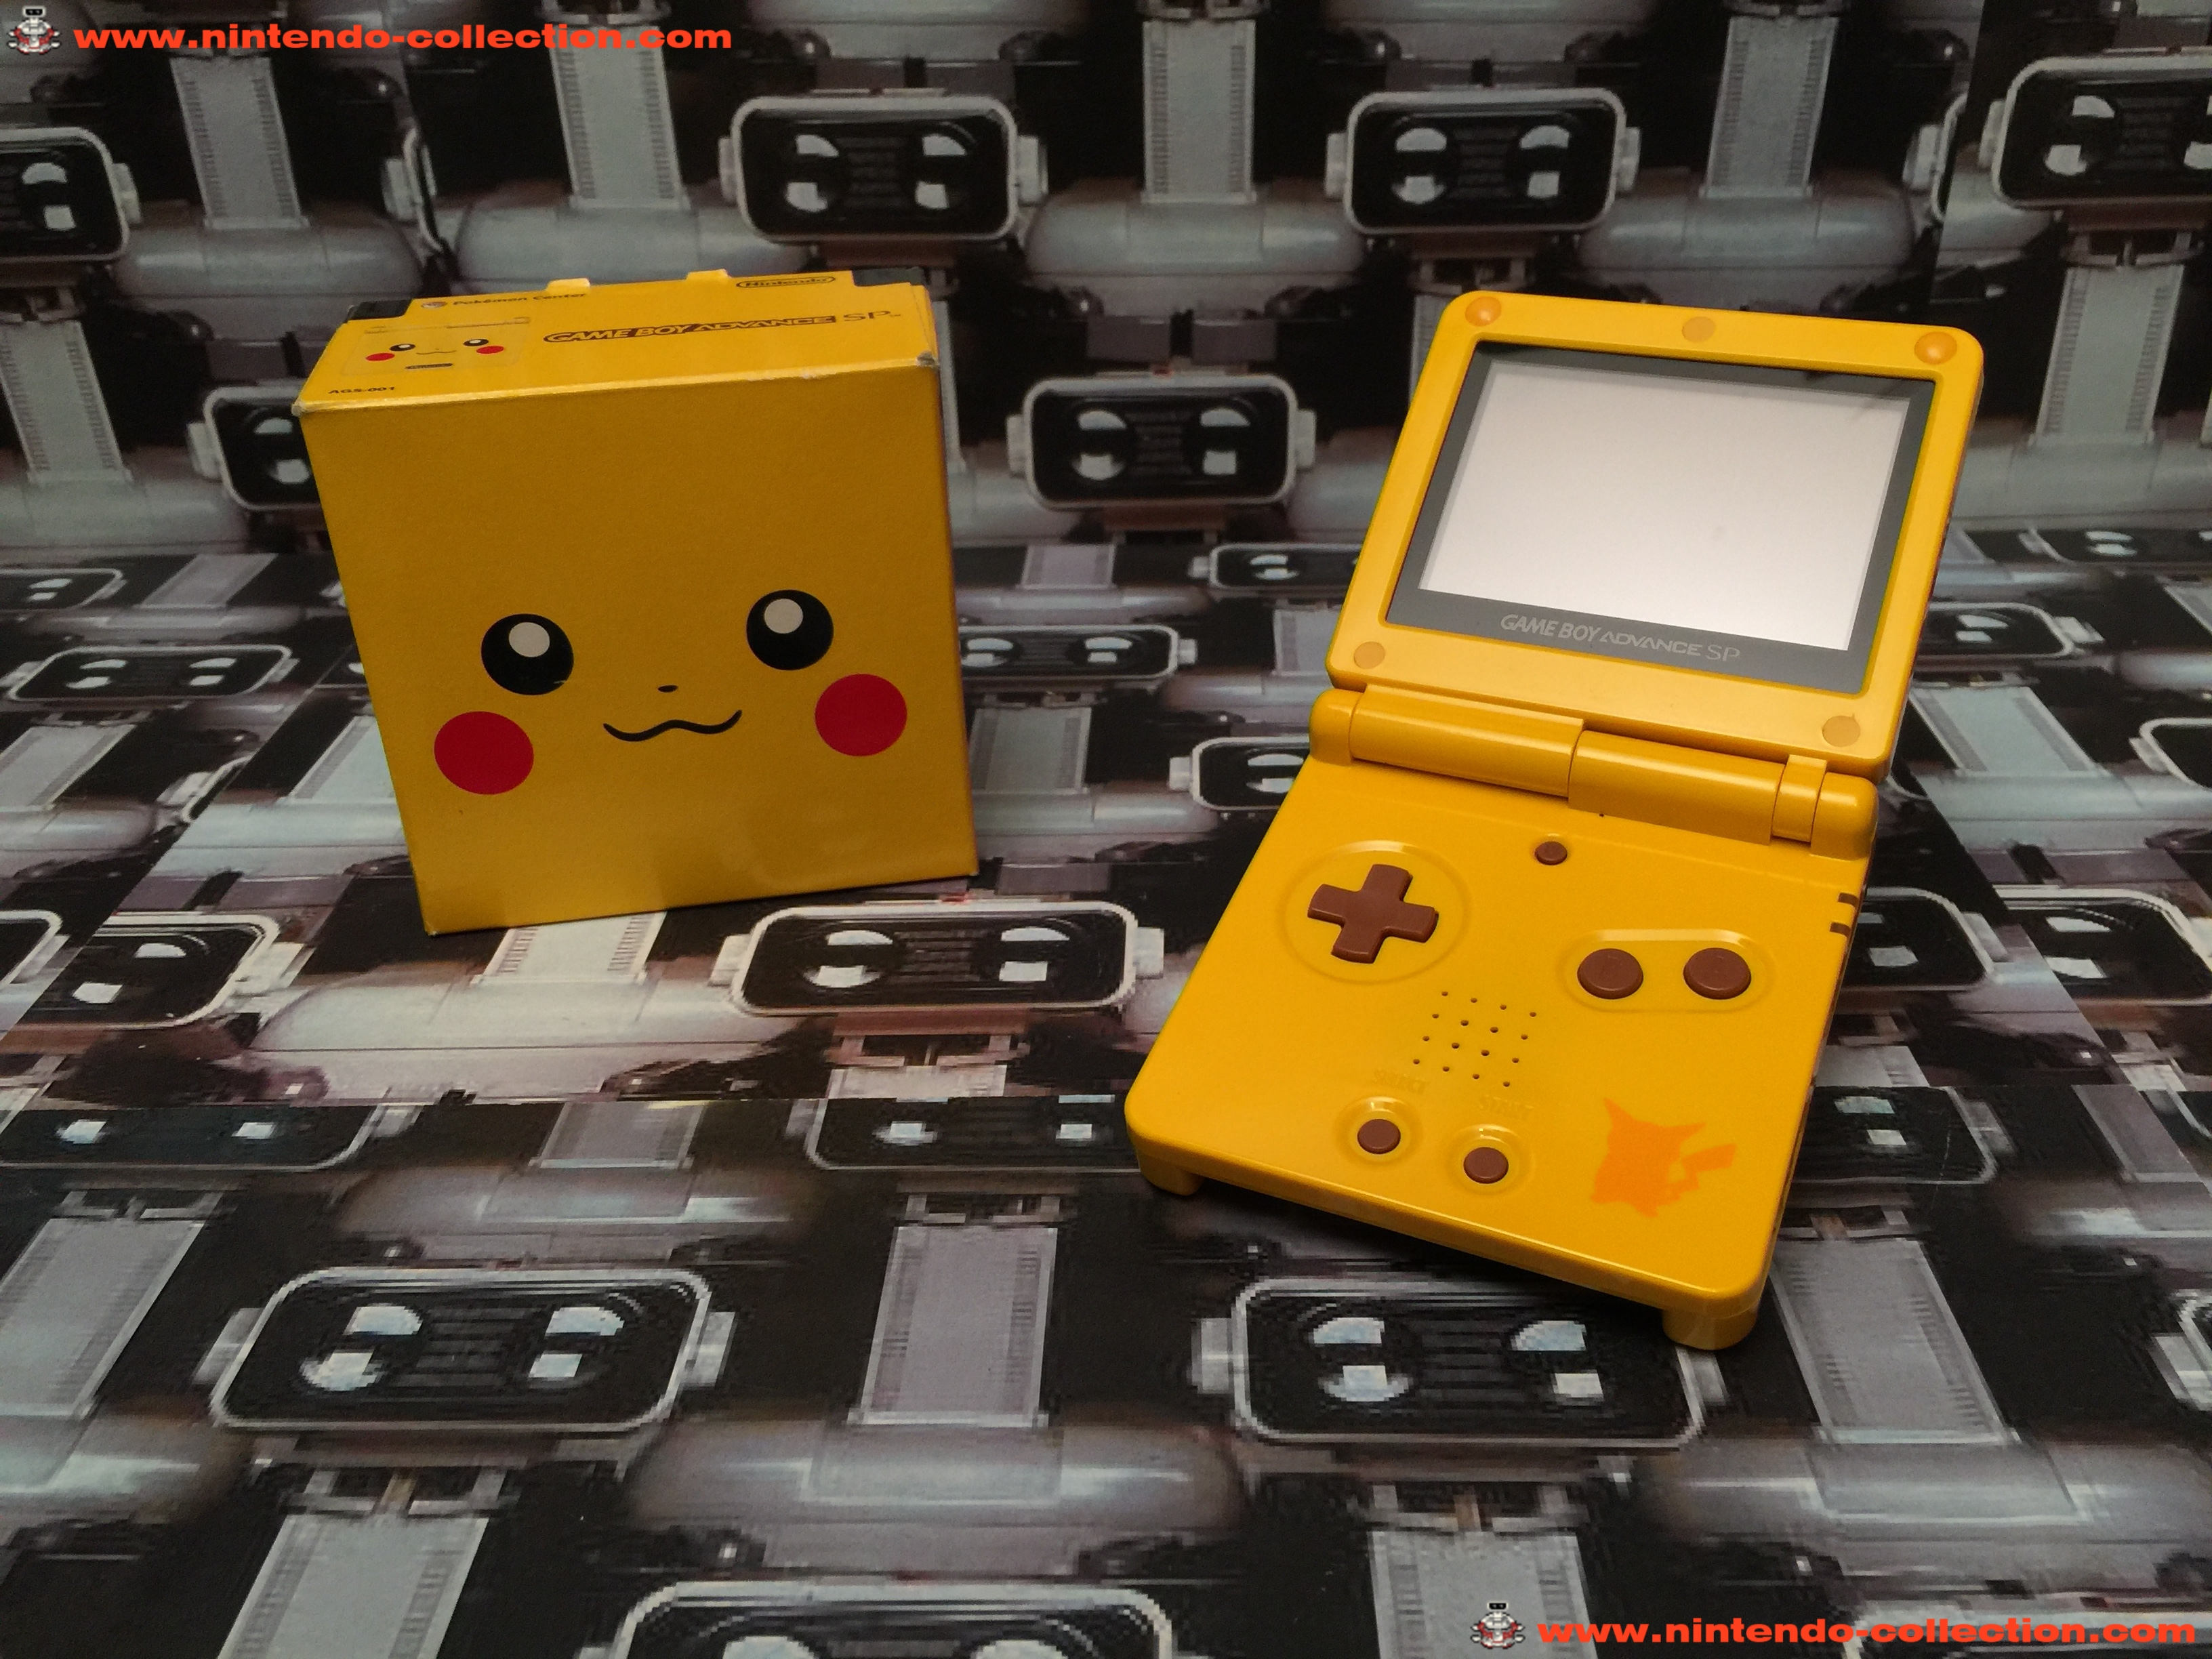 www.nintendo-collection.com - Gameboy Advance GBA SP Pikachu Limited Edition Pokemon center Japan Ja